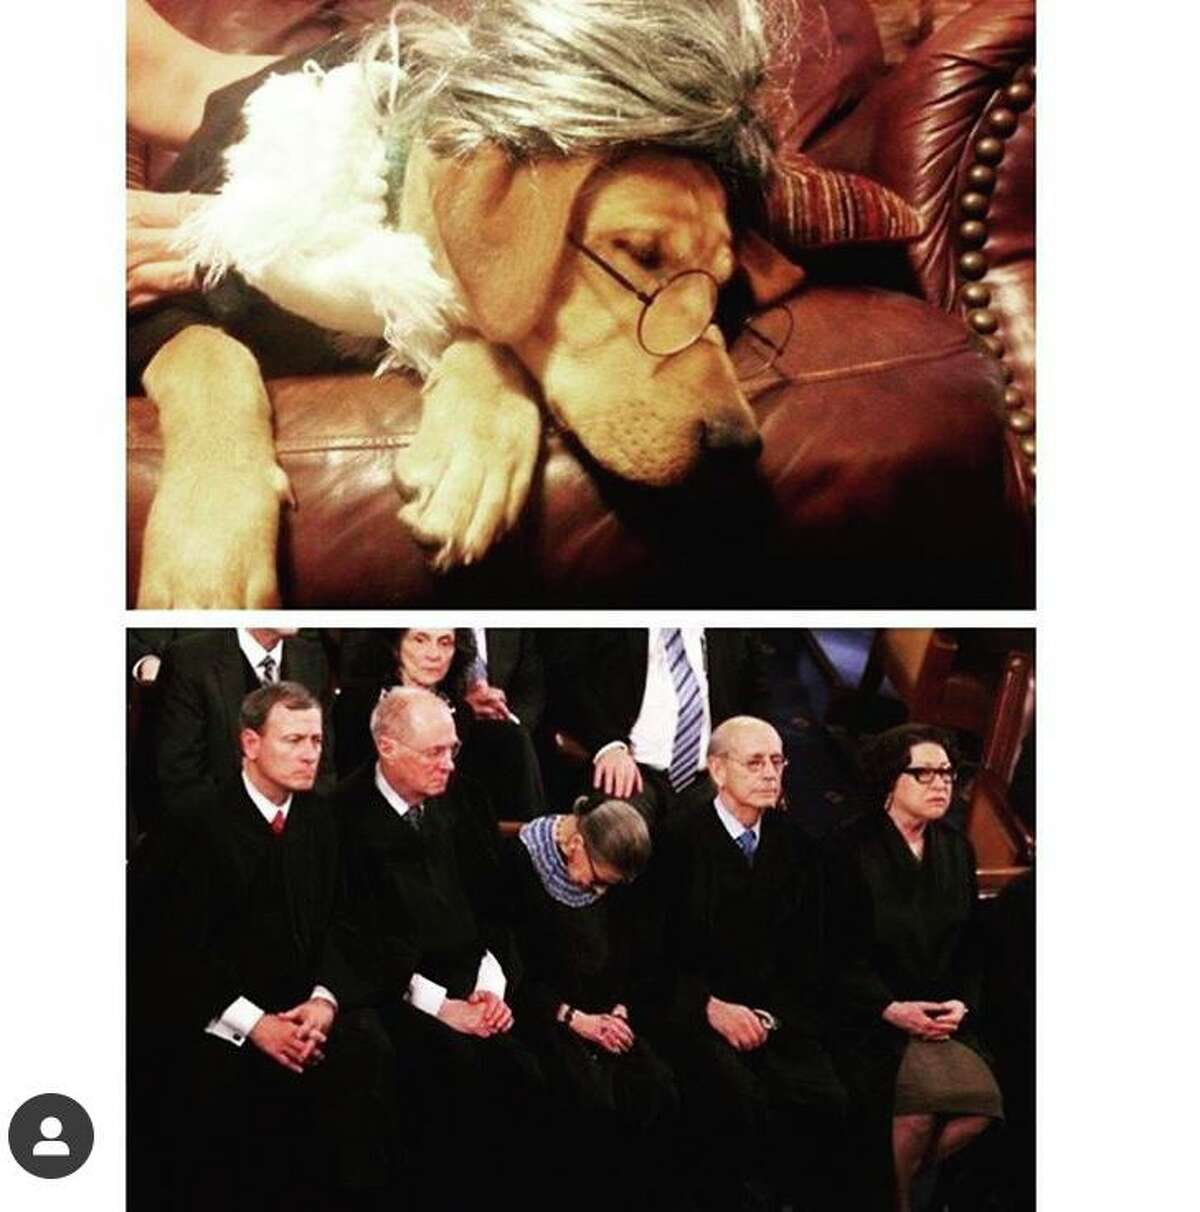 Jessica Revils dressed up her red lab Ginsburg honor of her namesake, Justice Ruth Bader Ginsburg. Revils shared this image, juxtaposed with an image of Ginsburg falling asleep at the State of the Union, with her legal heroine at an overseas legal program in Malta on July 4, 2017 when she was a student at South Texas College of Law.